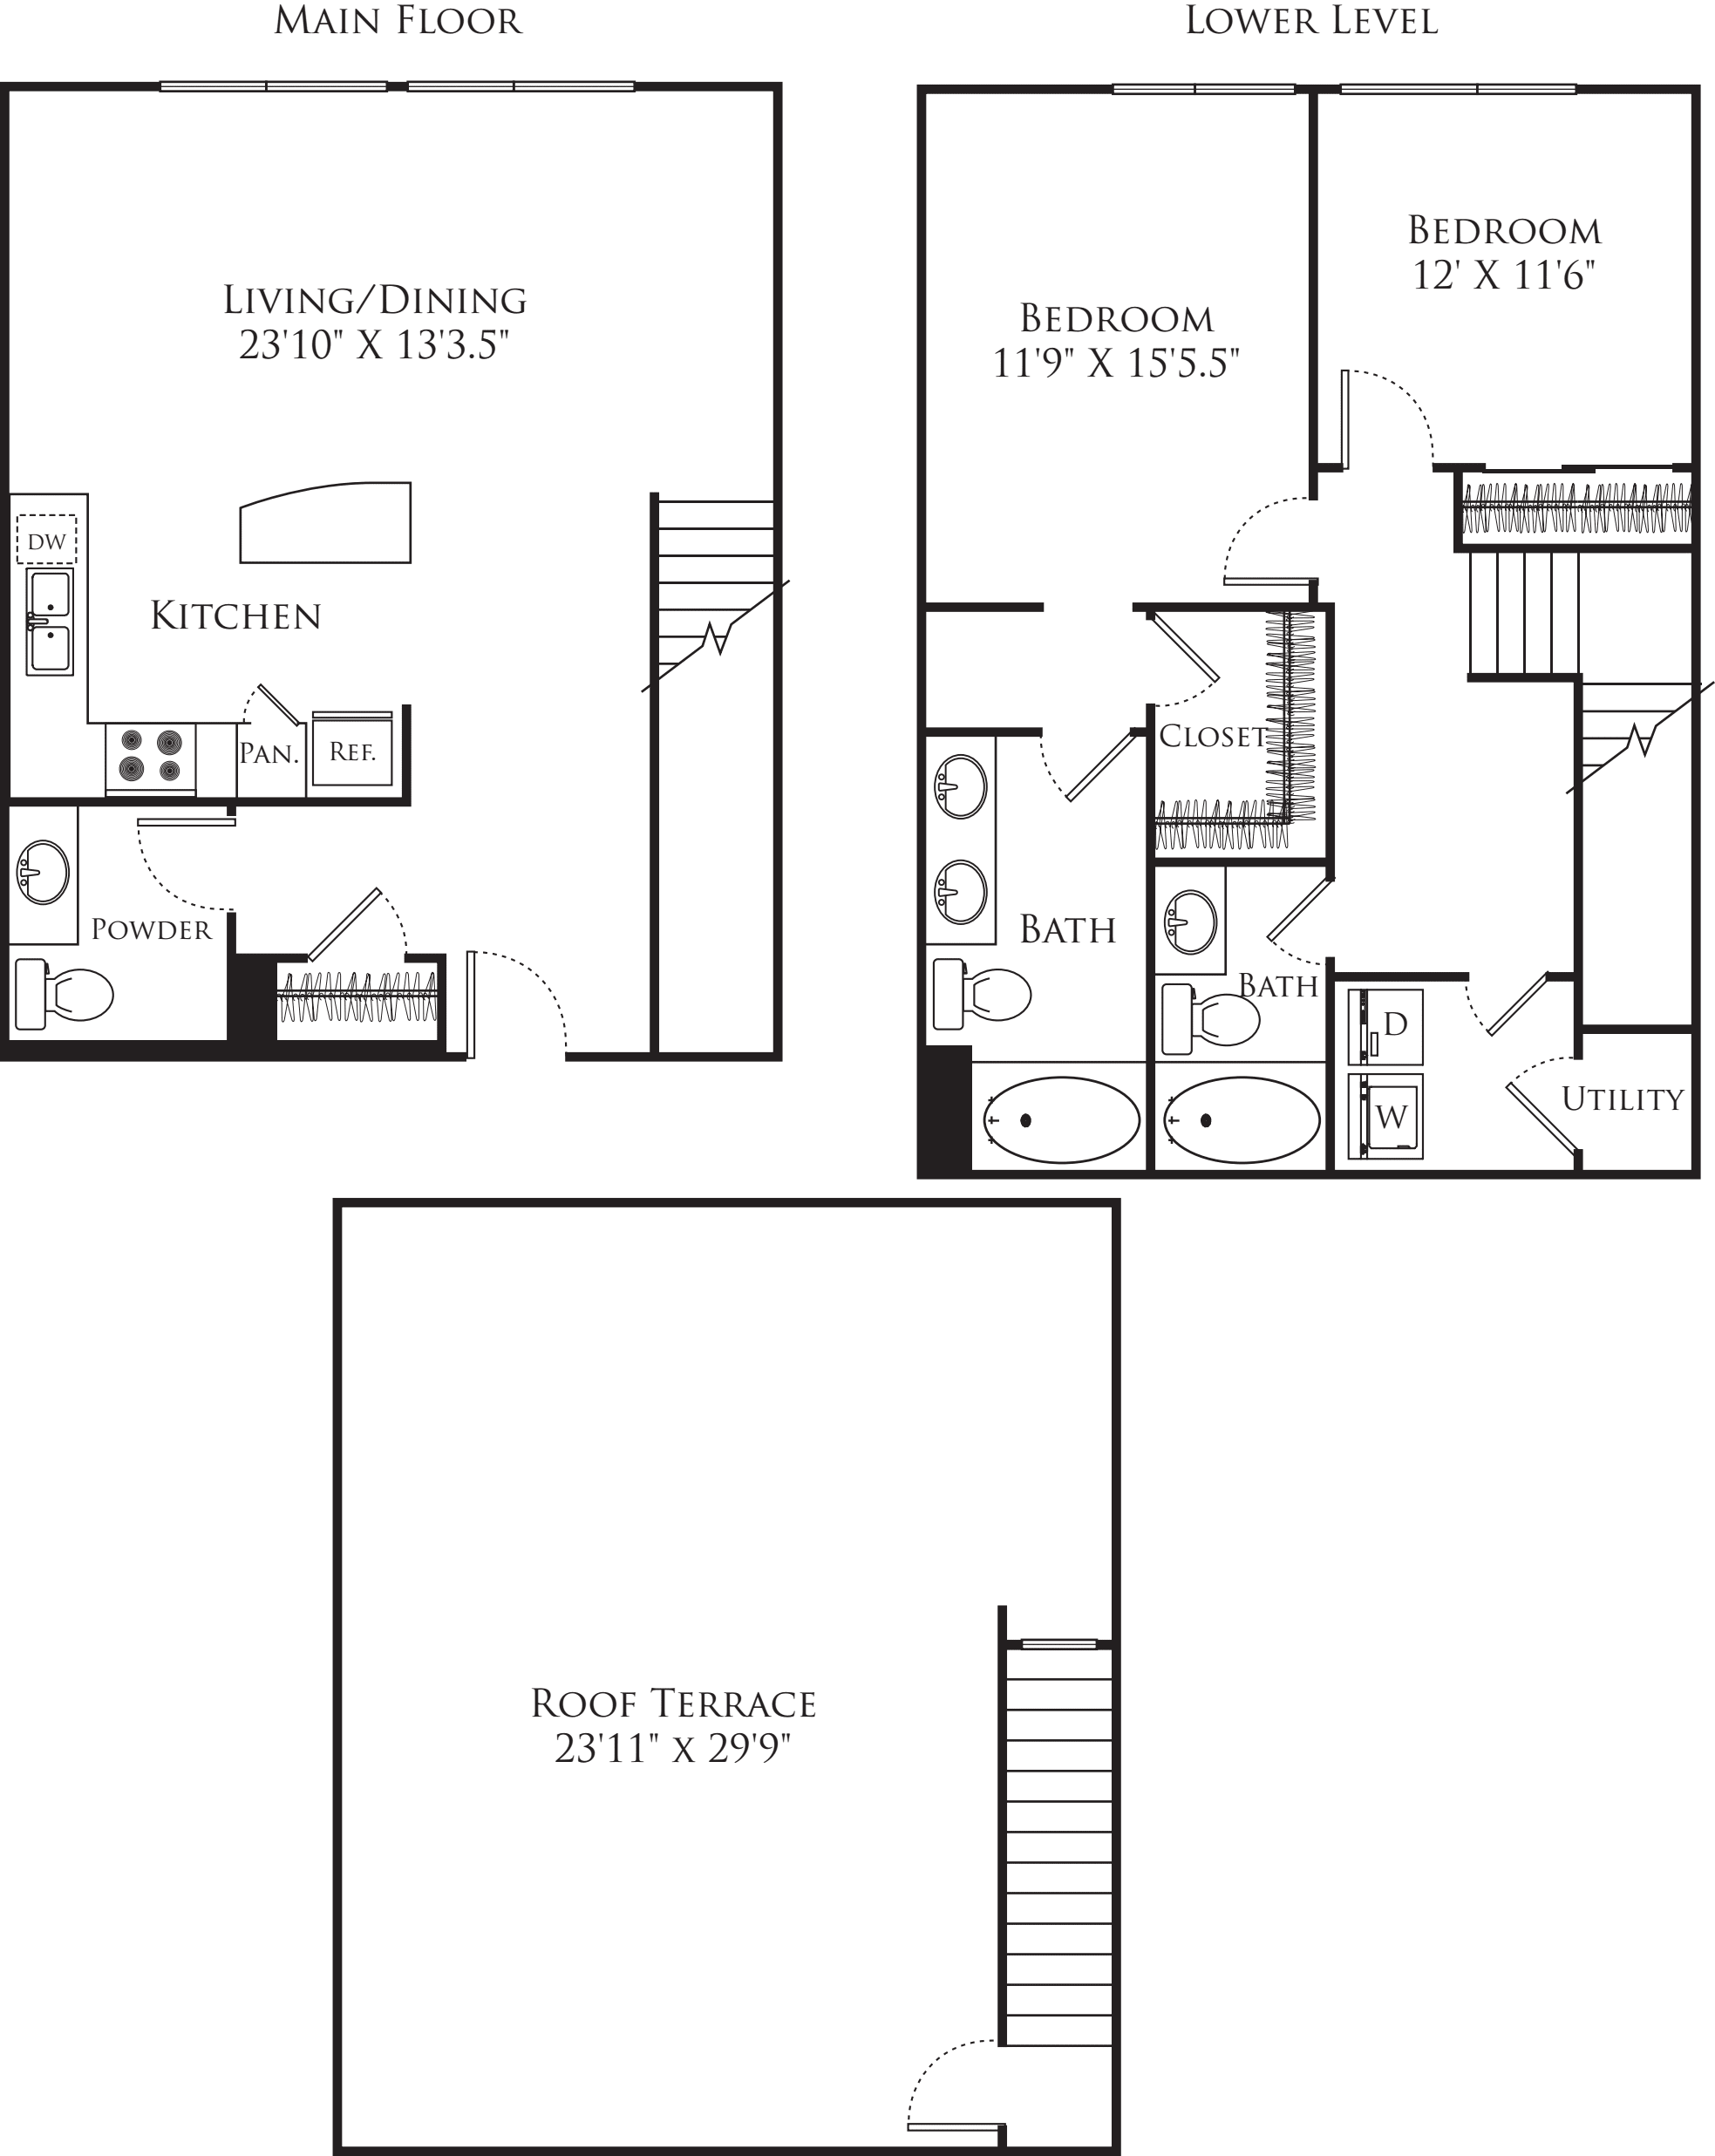 2 Bedroom TE